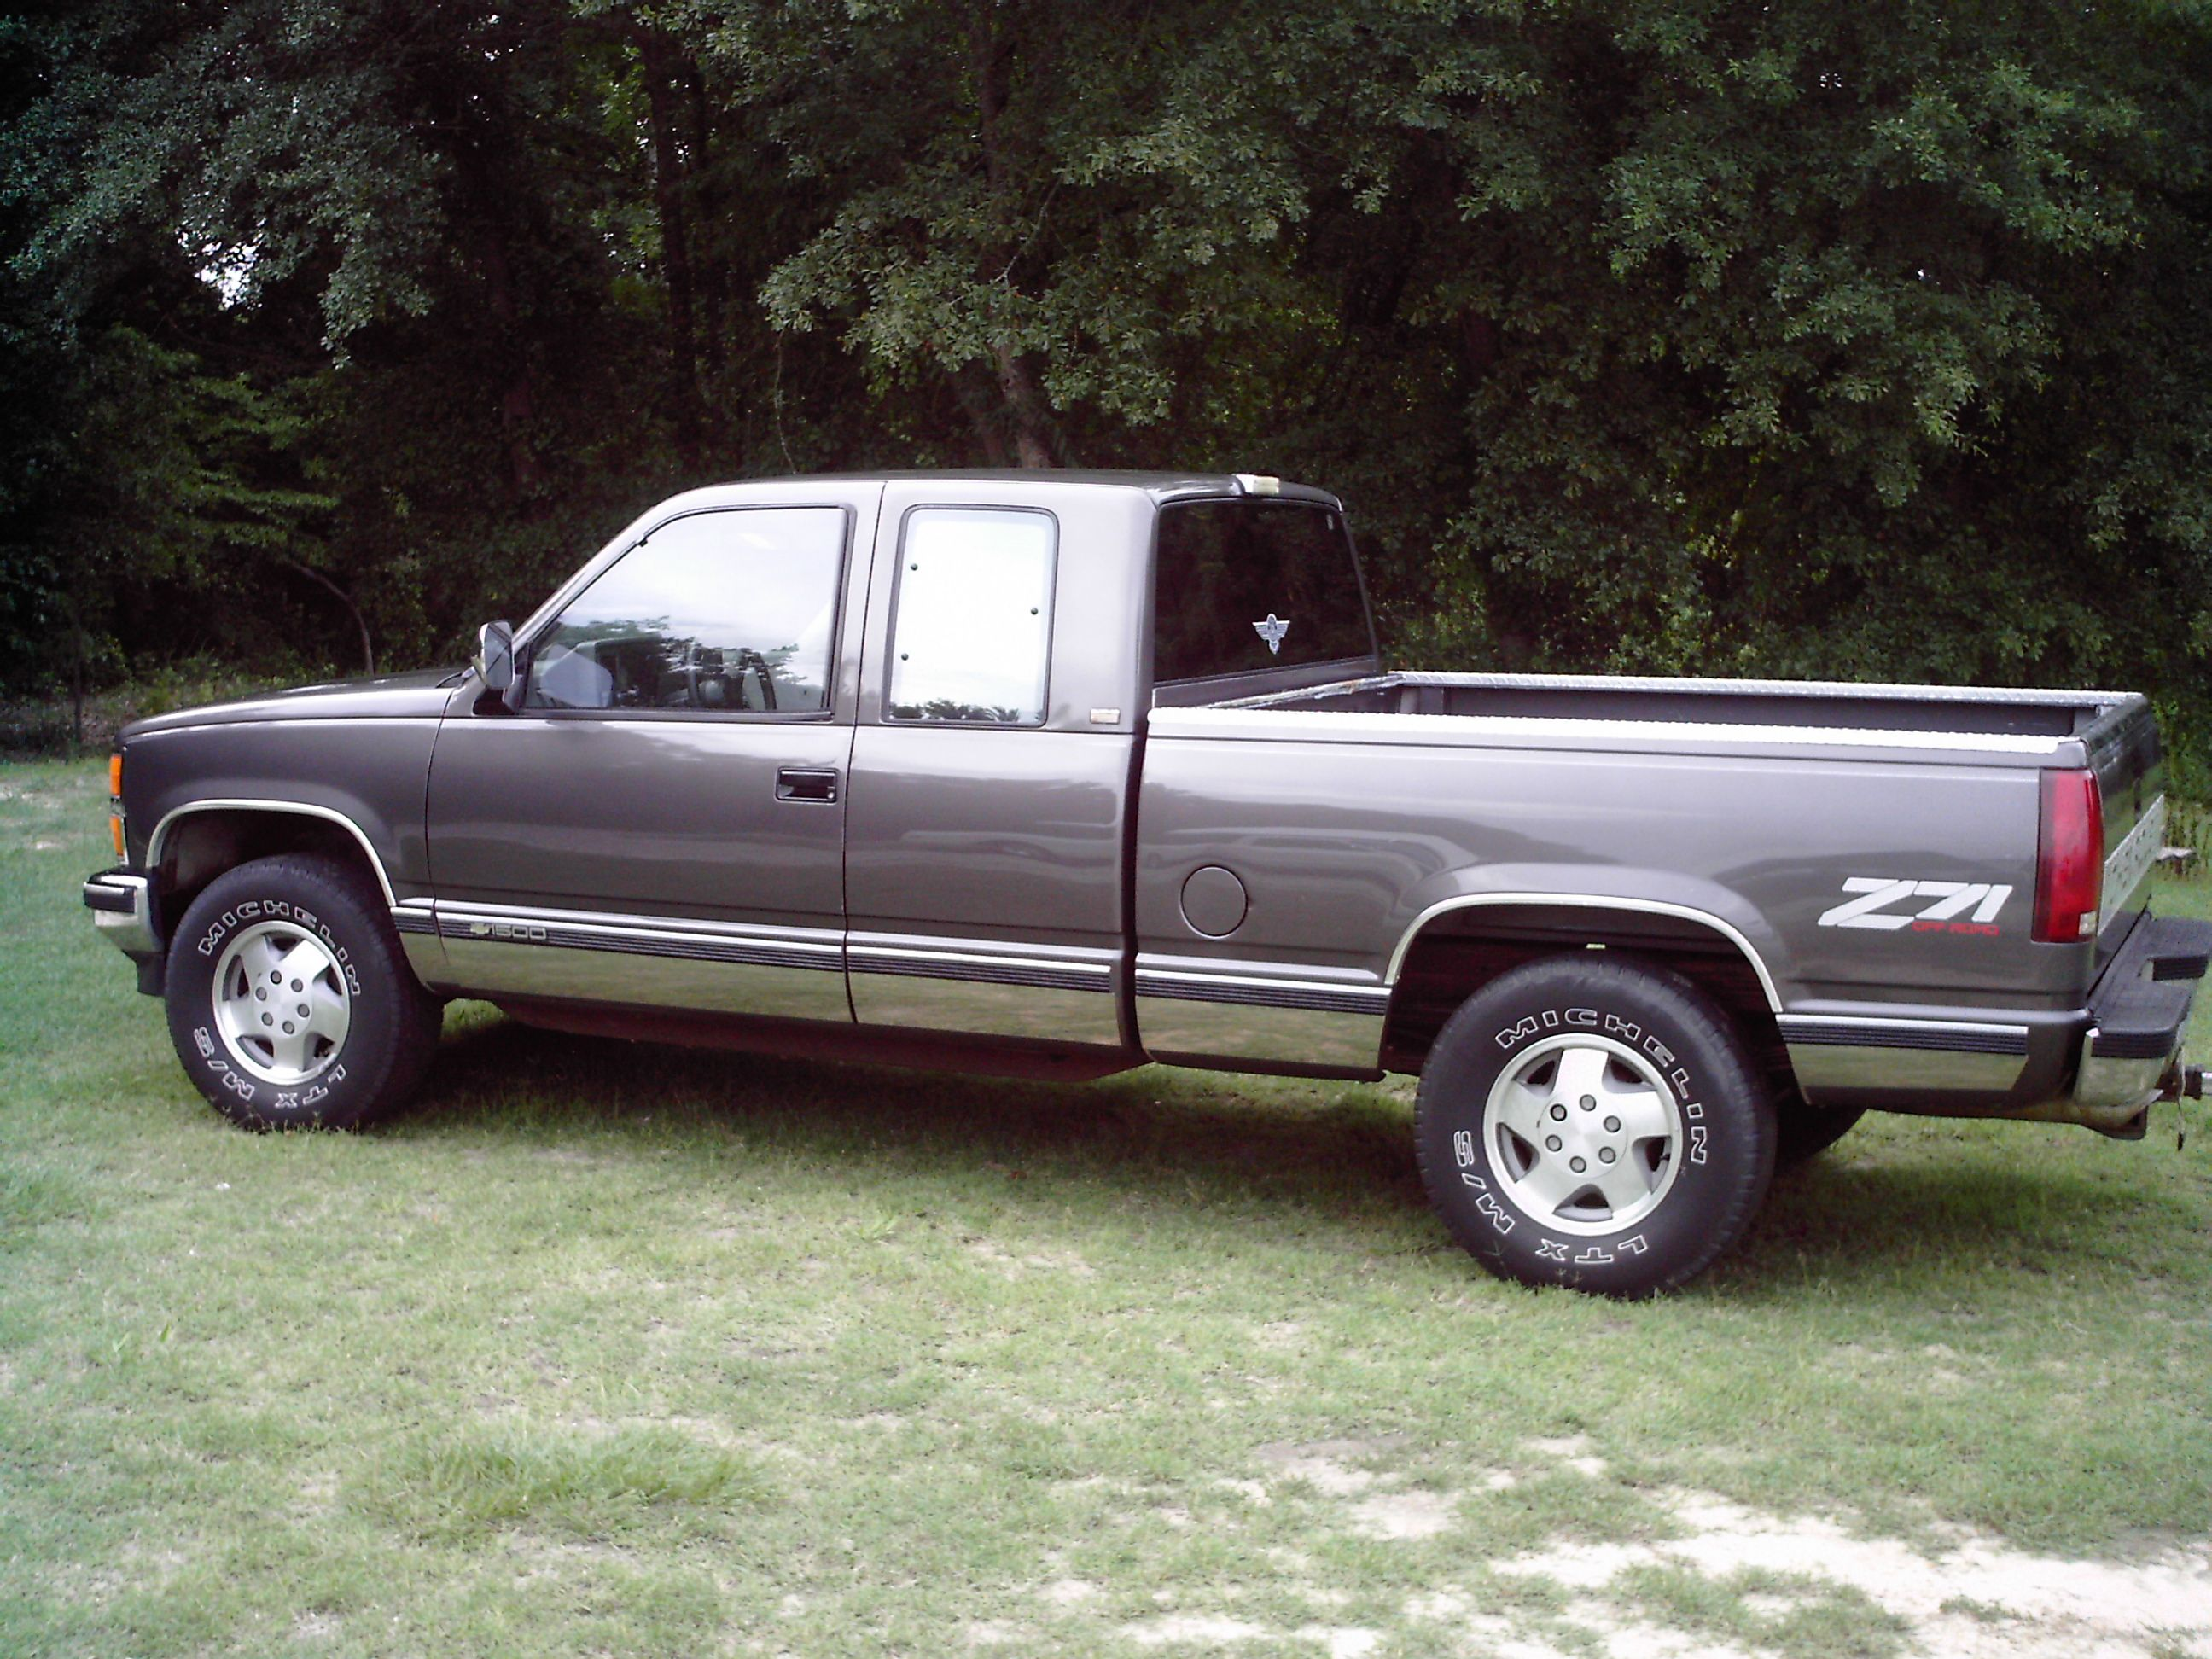 small resolution of grey 1992 z71 chevy this was my daddy s ol truck i wish we still had it i want a truck just like this one but jacked up n with some big